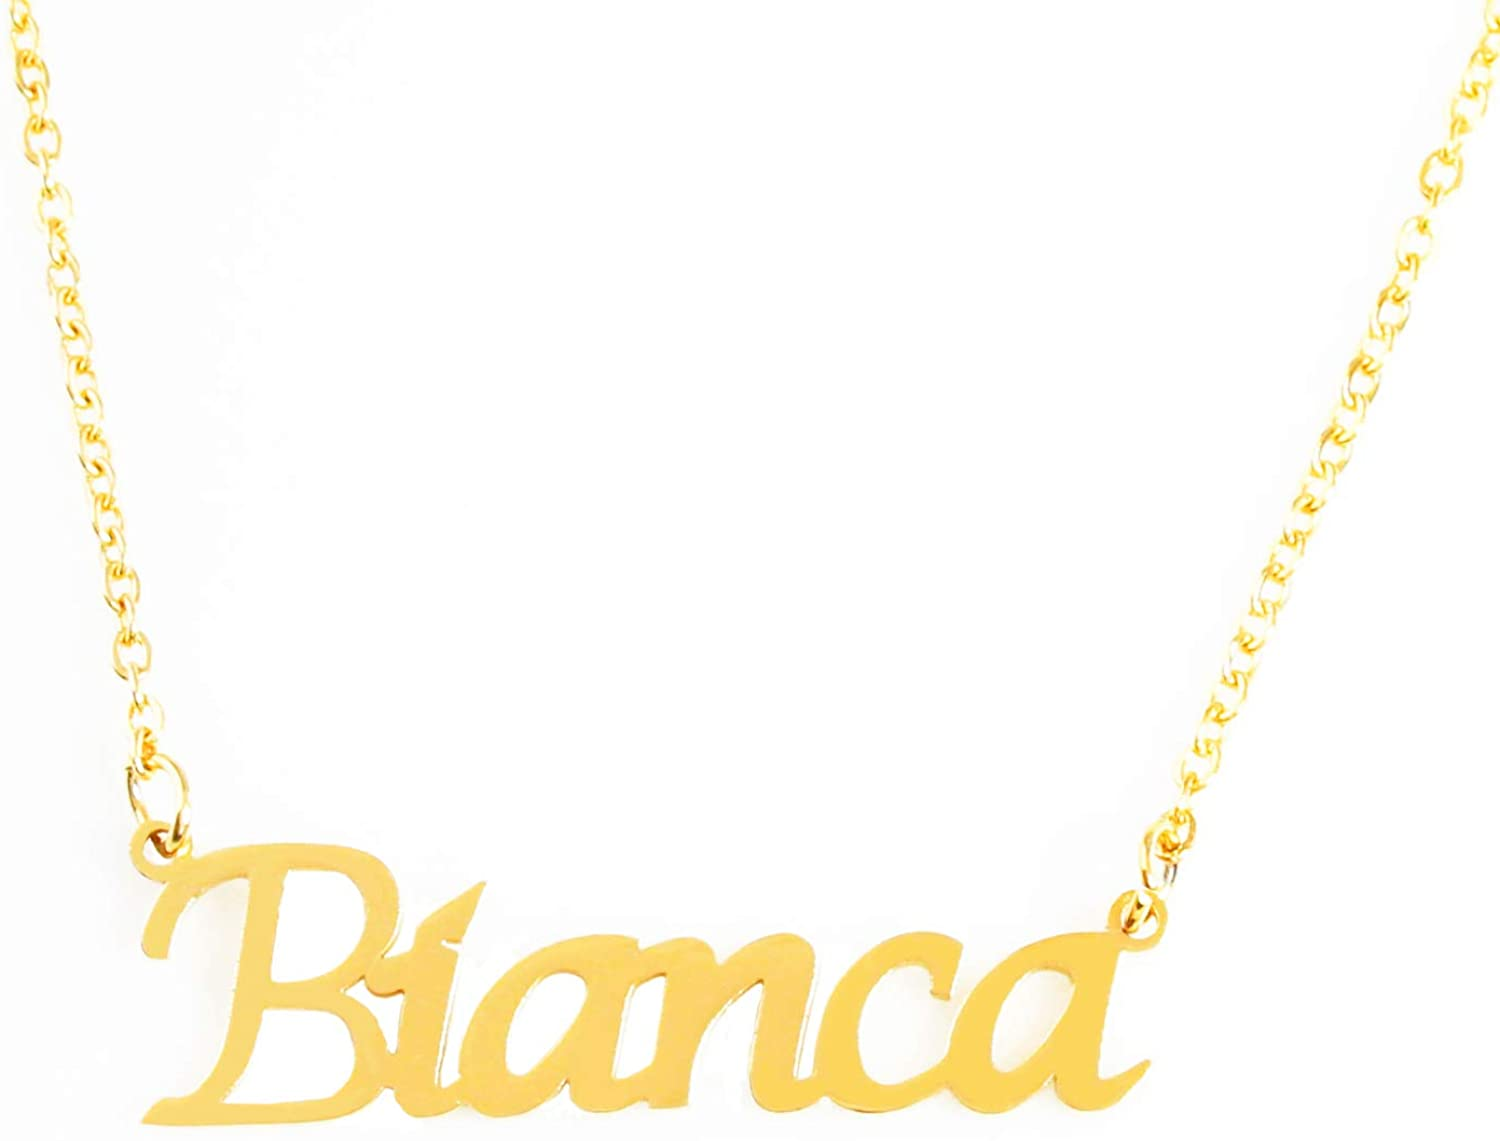 Zacria Bianca Custom Name Necklace Personalized - 18ct Gold Plated